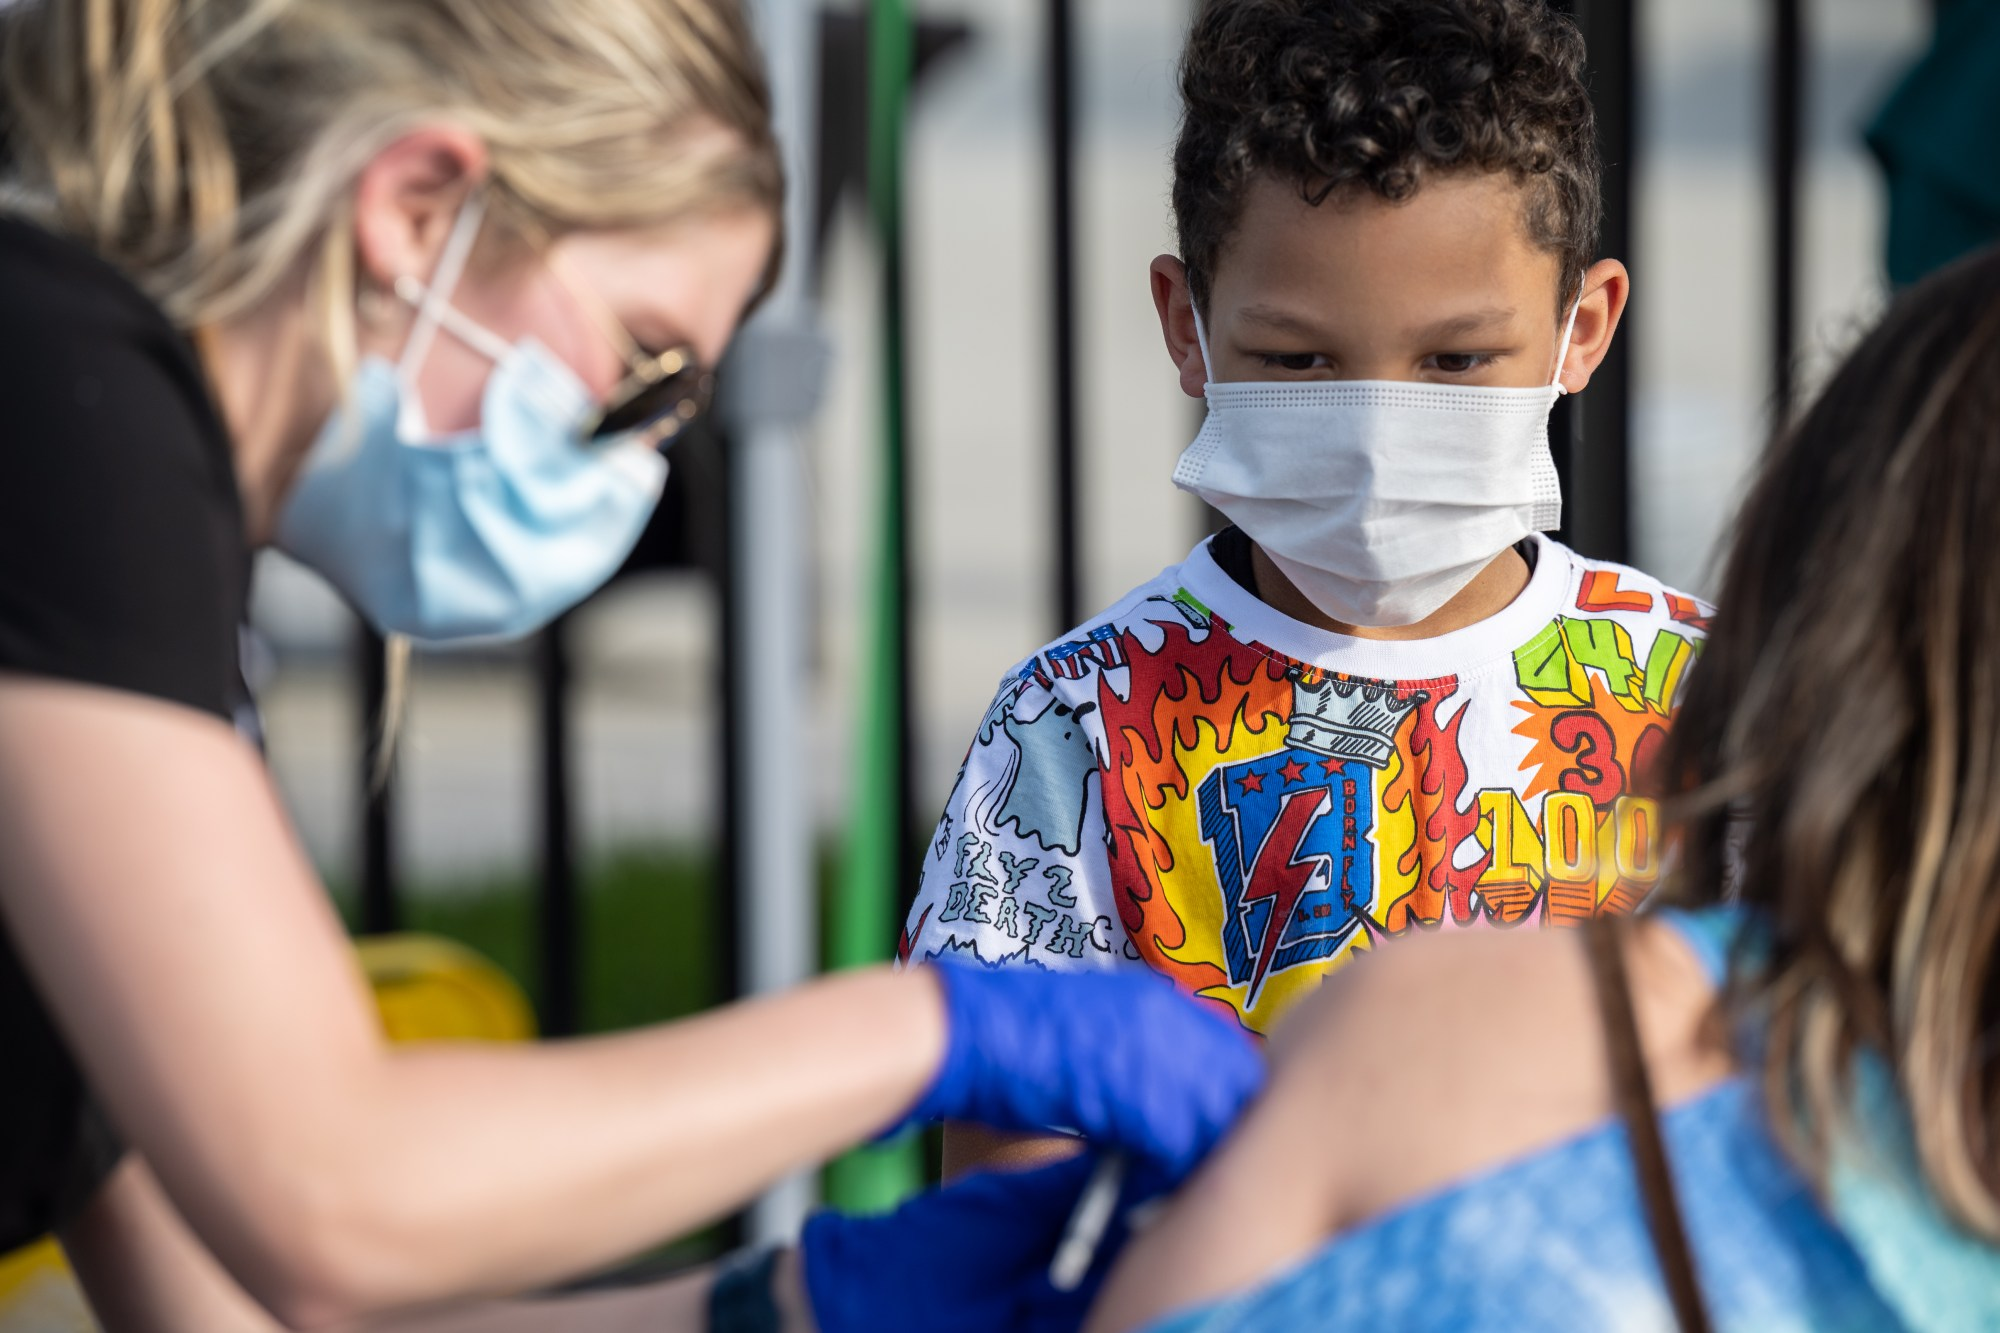 A child watches as a nurse administers a shot of COVID-19 vaccine during a pop-up vaccination event at Lynn Family Stadium on April 26, 2021, in Louisville, Kentucky. (Jon Cherry/Getty Images)